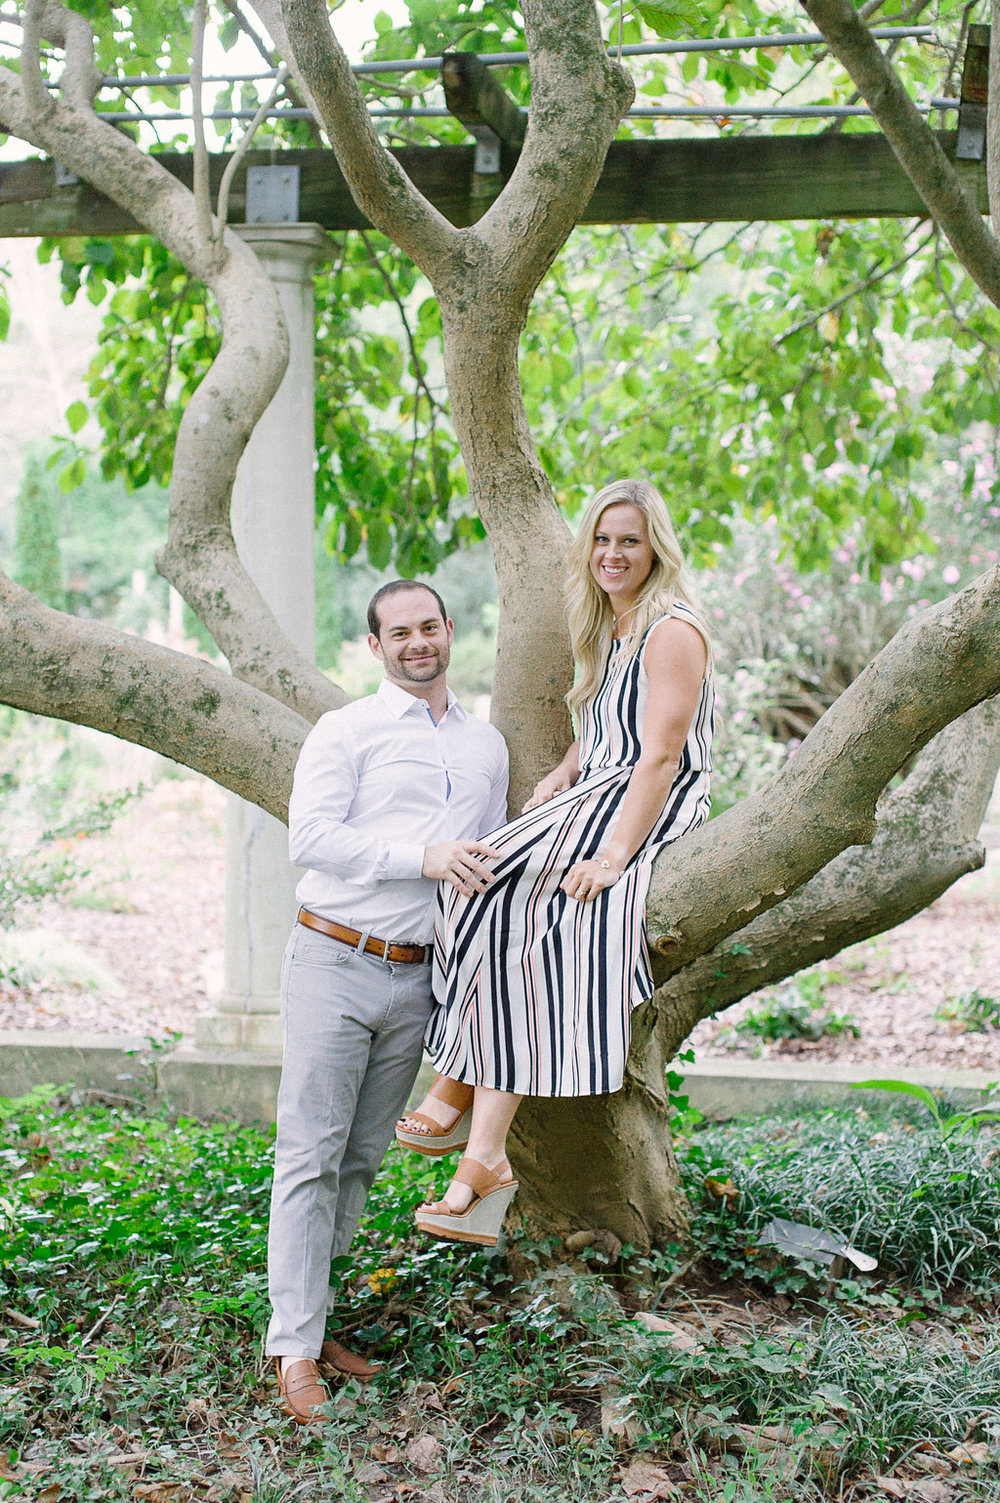 Cator-Woolford-Gardens-Engagement-atlanta-wedding-photographer-hannah-forsberg-14.jpg